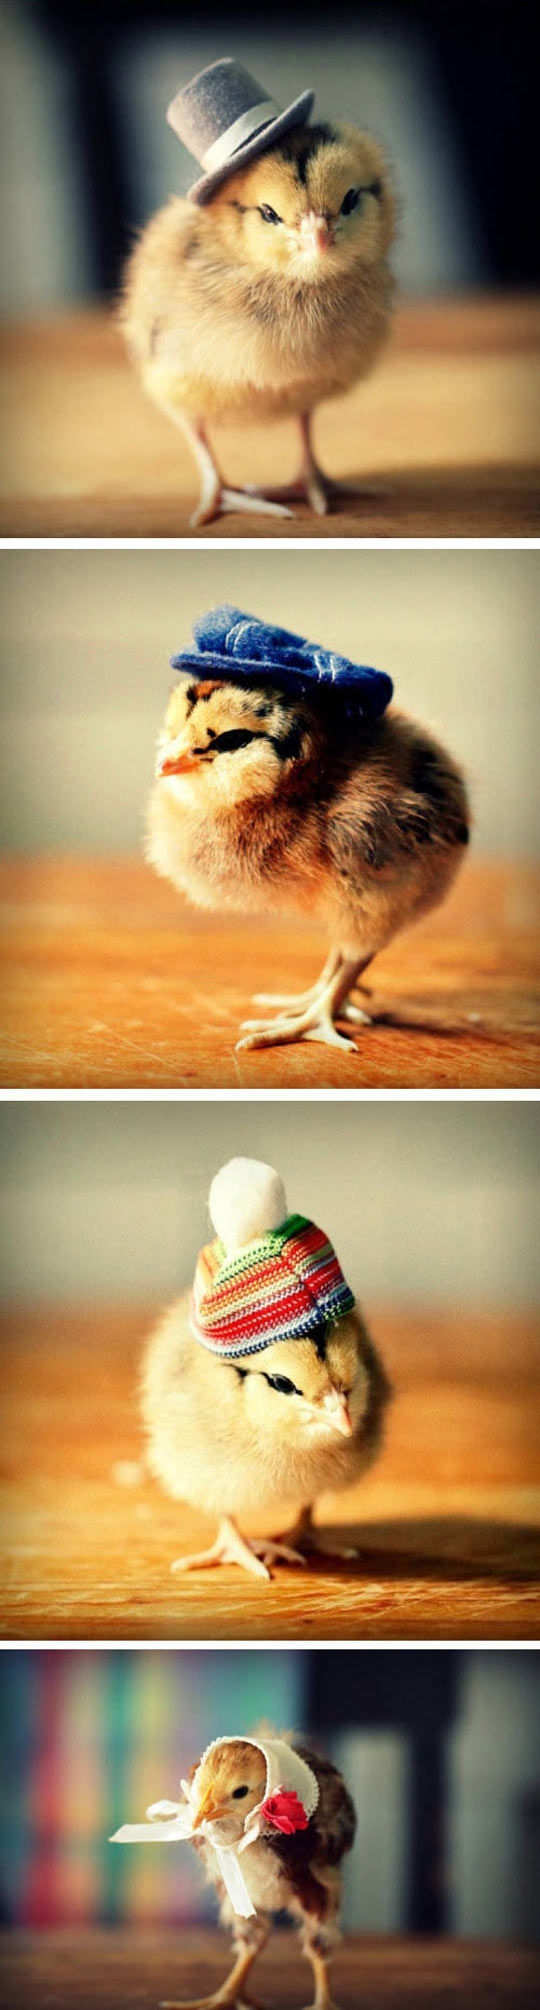 Chicks With Fabulous Hats